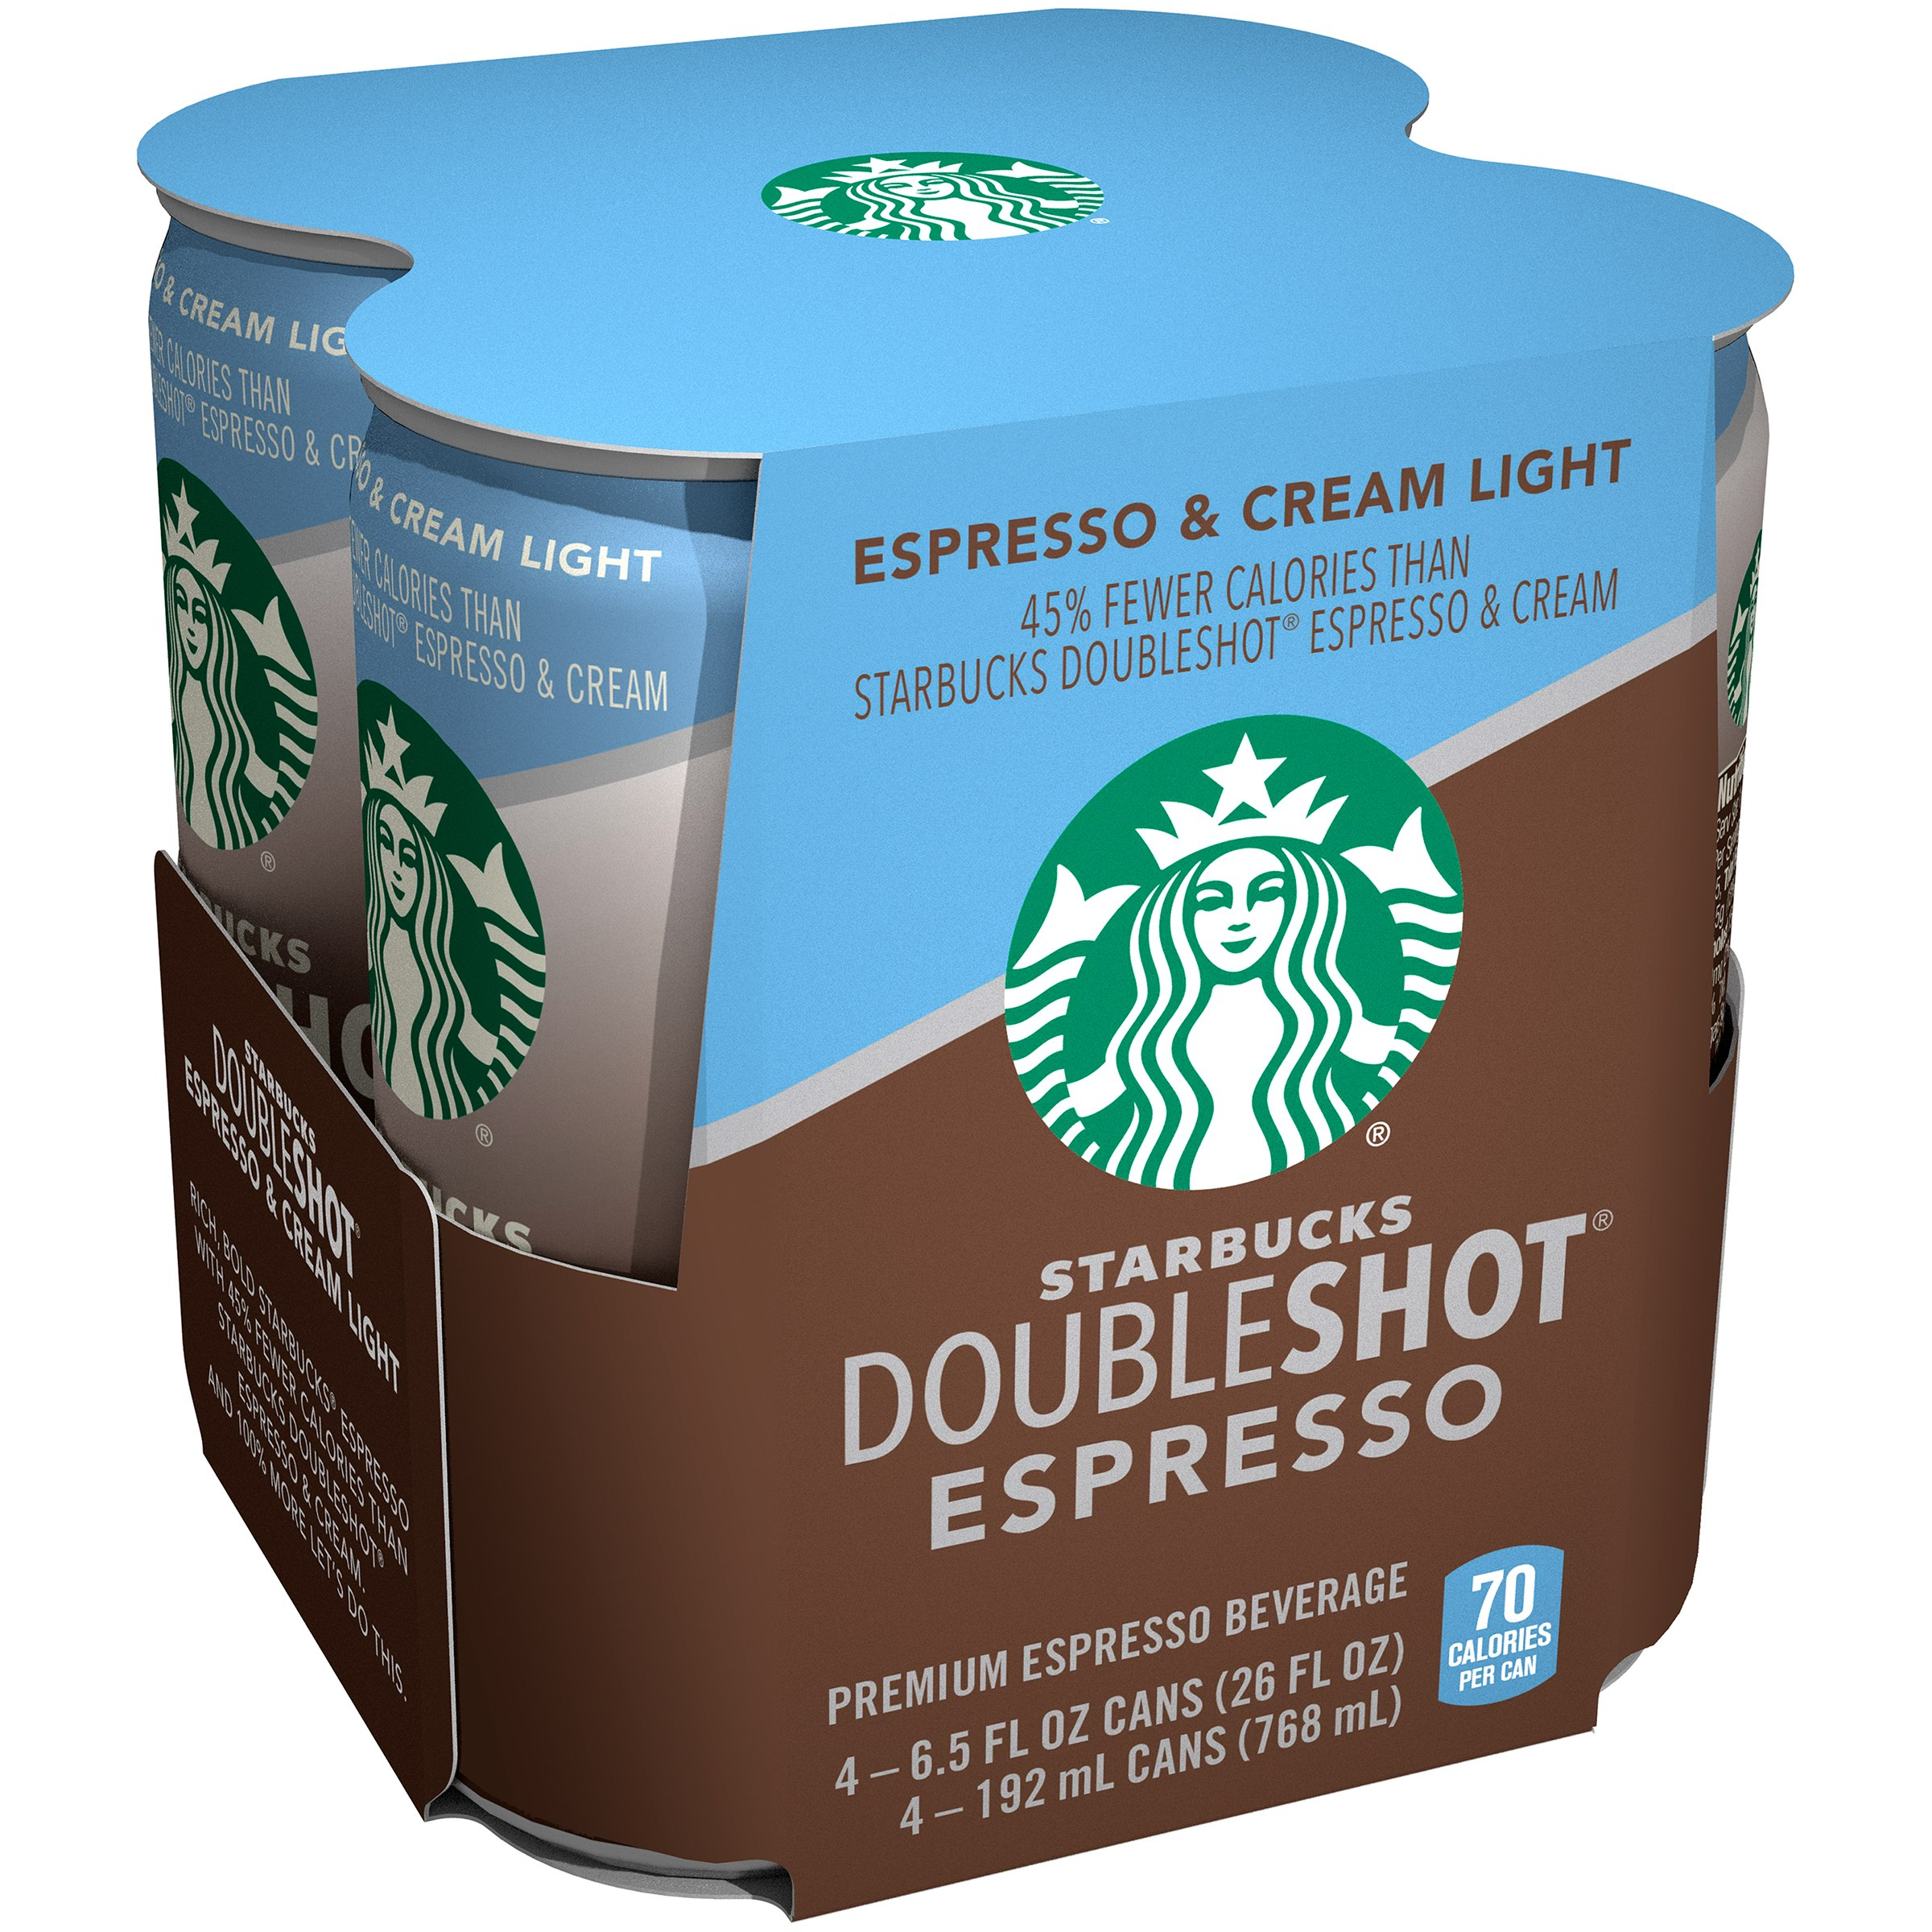 Starbucks Cream Light Doubleshot Espresso & Cream, 6.5 Fl Oz, 4 Count